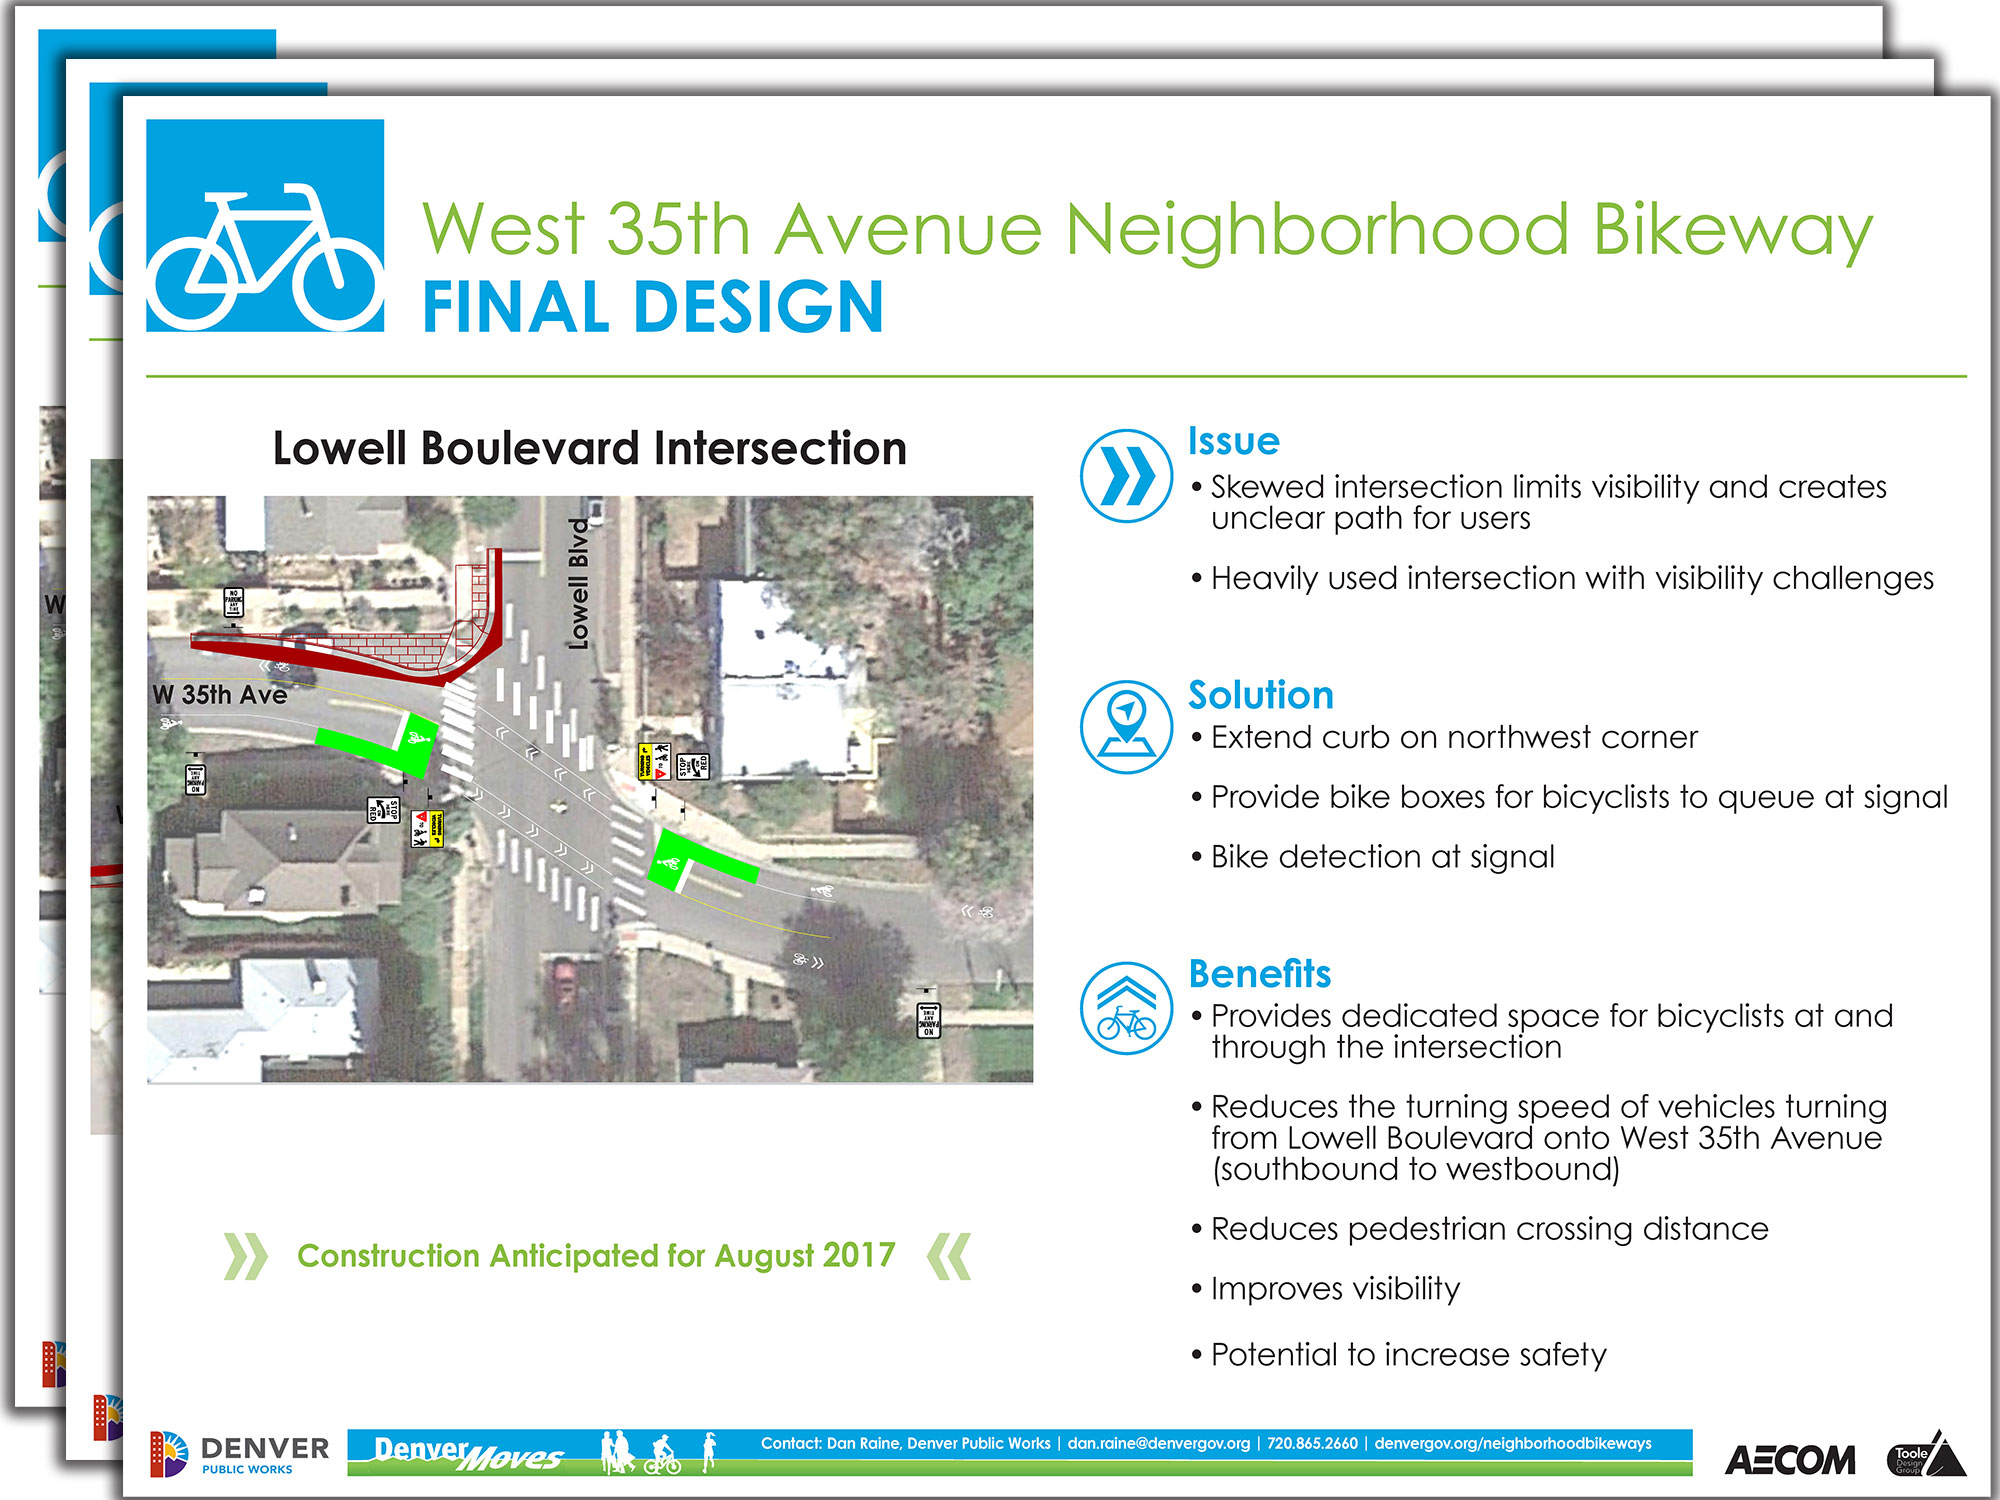 preview of presentation boards showing intersections along W 35th Ave